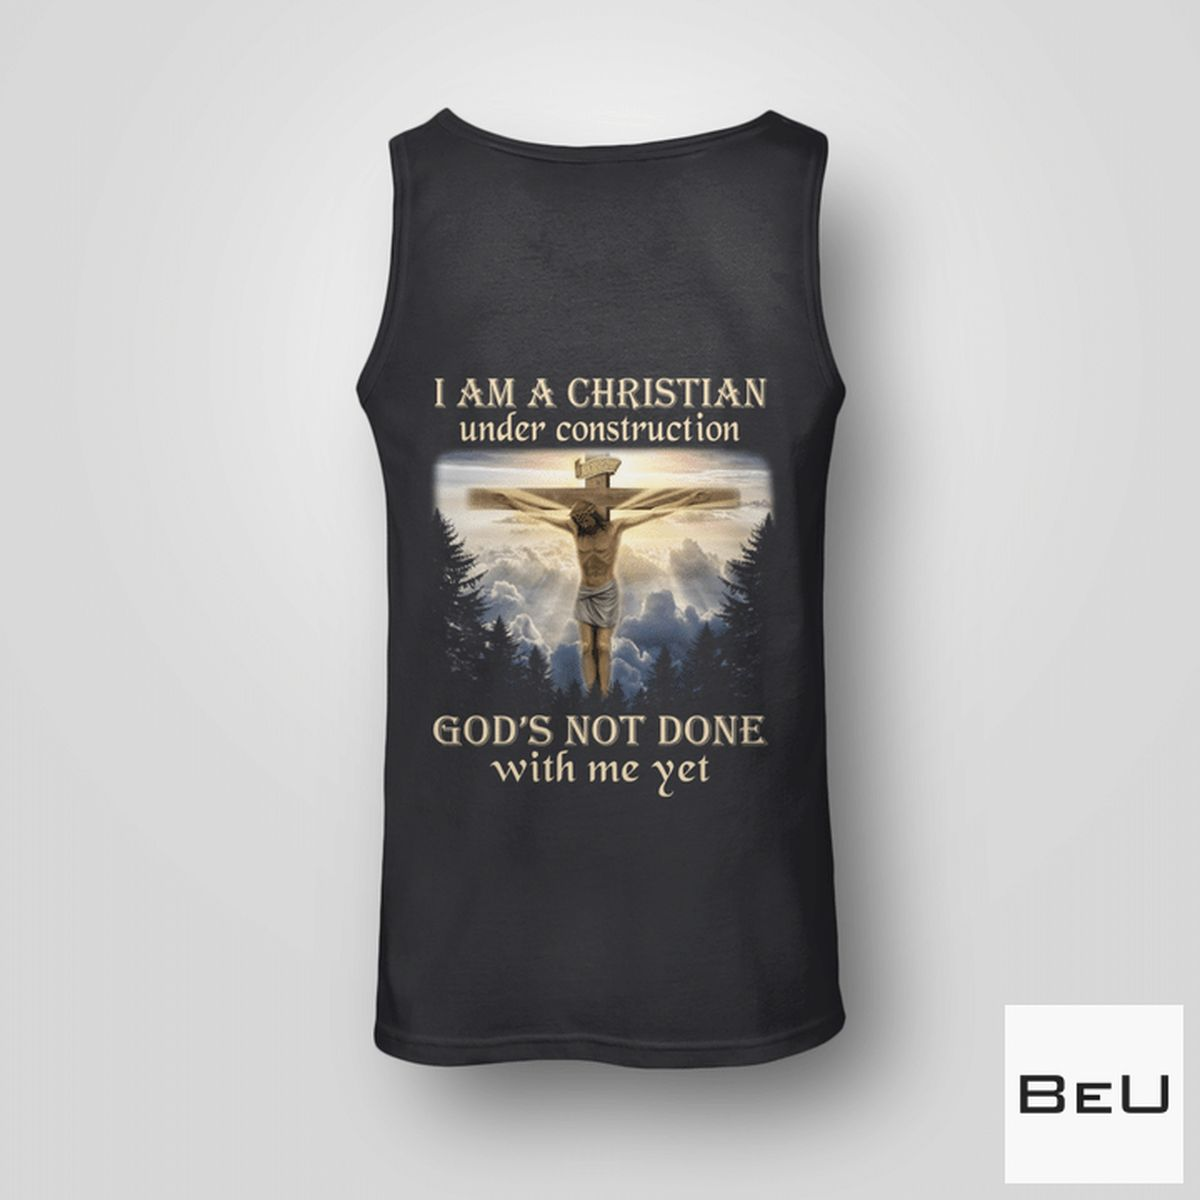 Clothing I Am A Christian Under Construction God's Not Done With Me Yet Shirt, hoodie, tank top